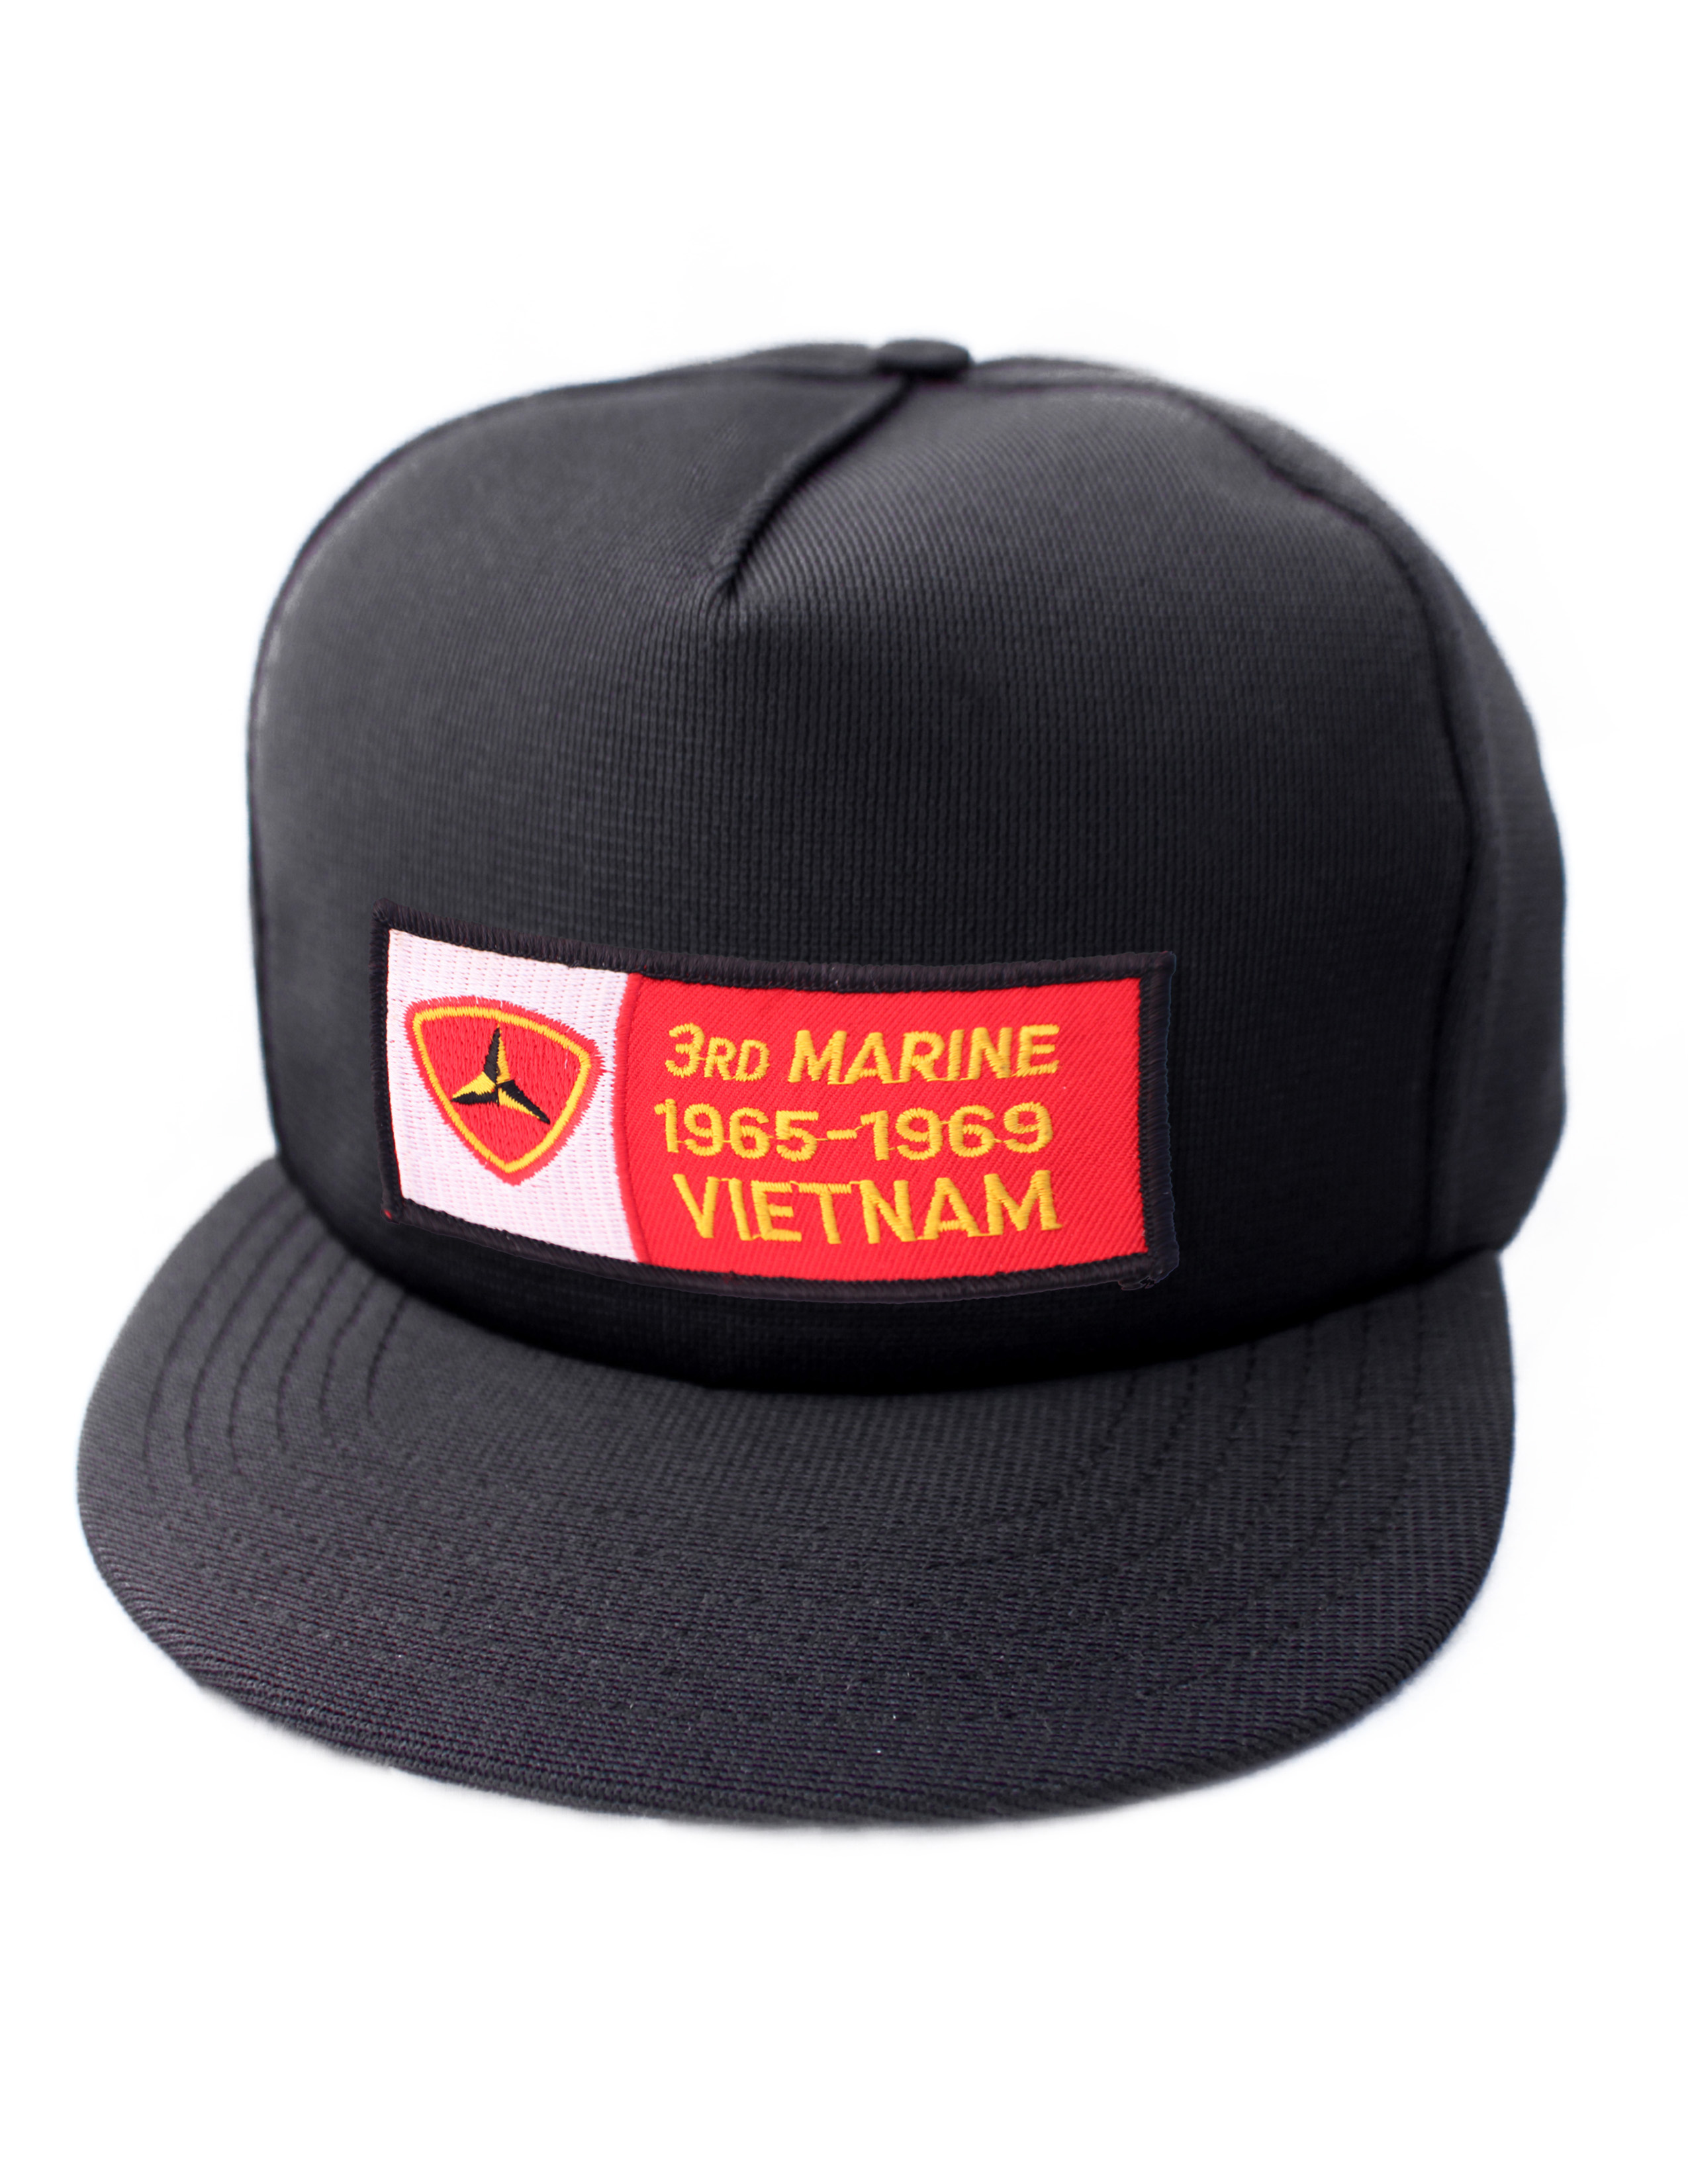 3rd Marine 1965 - 1969 Vietnam Black Ball Cap US Made